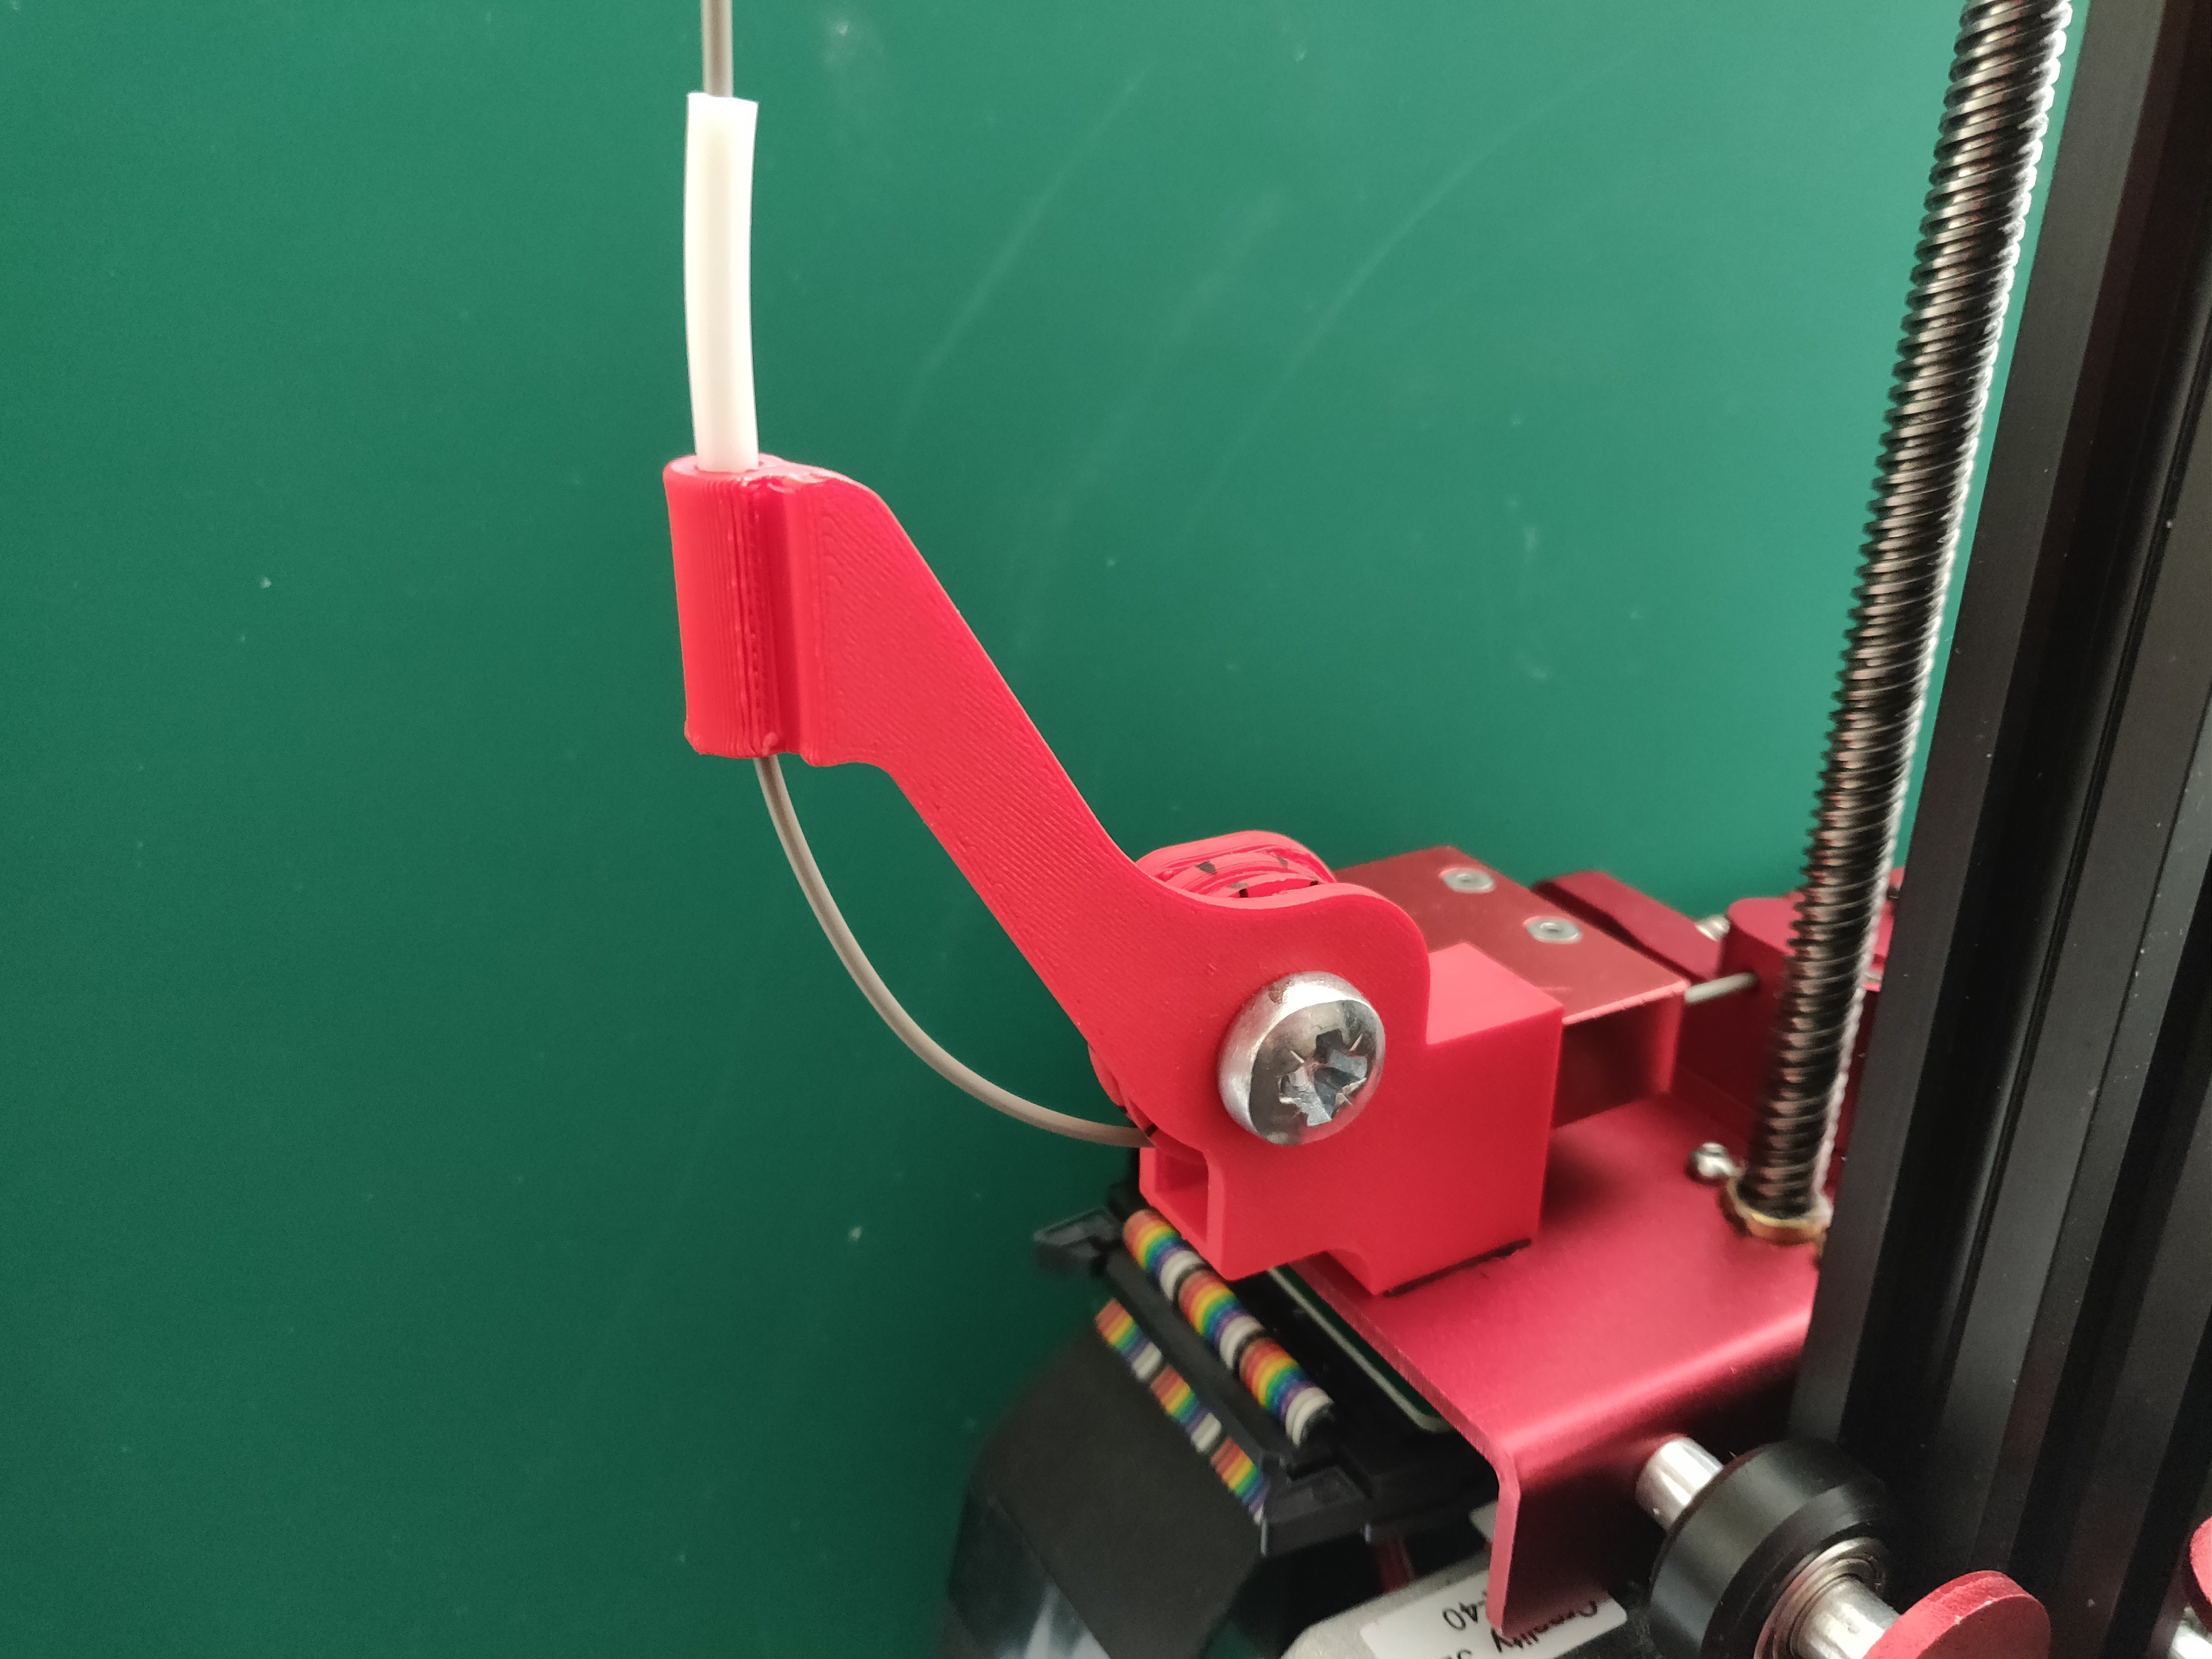 Creality CR10S-Pro filament guide by Nitec0re - Thingiverse